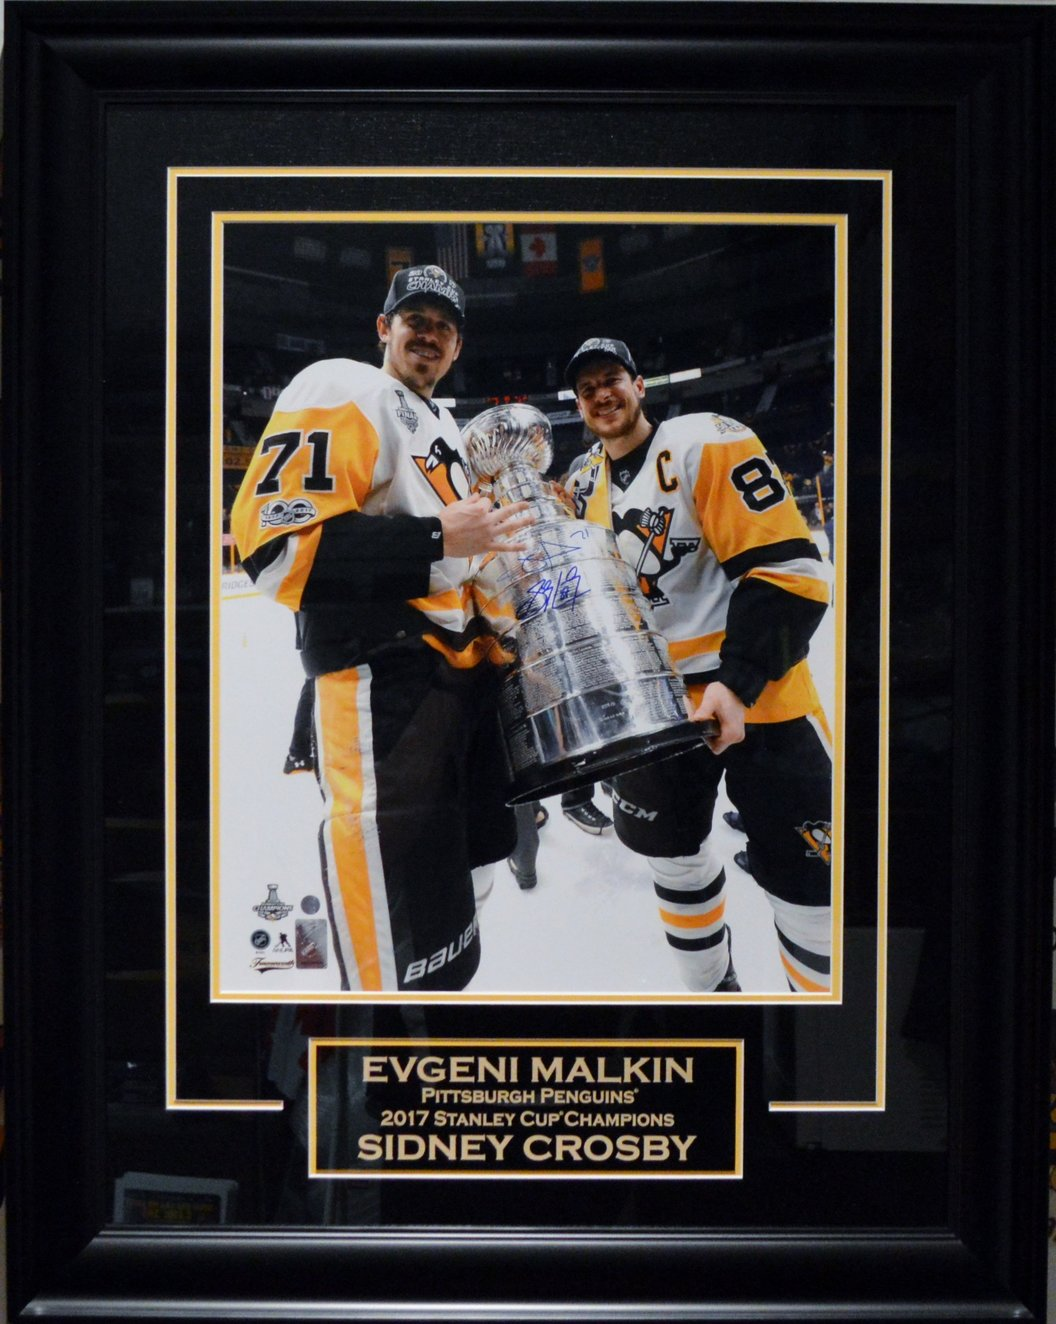 cf9b96bc813 ... Autographed Pittsburgh Penguins Framed 16 x 20 Photo.  West Coast Authentic NHL Penguins Sidney Crosby Evgeni Malkin Autographed Photo